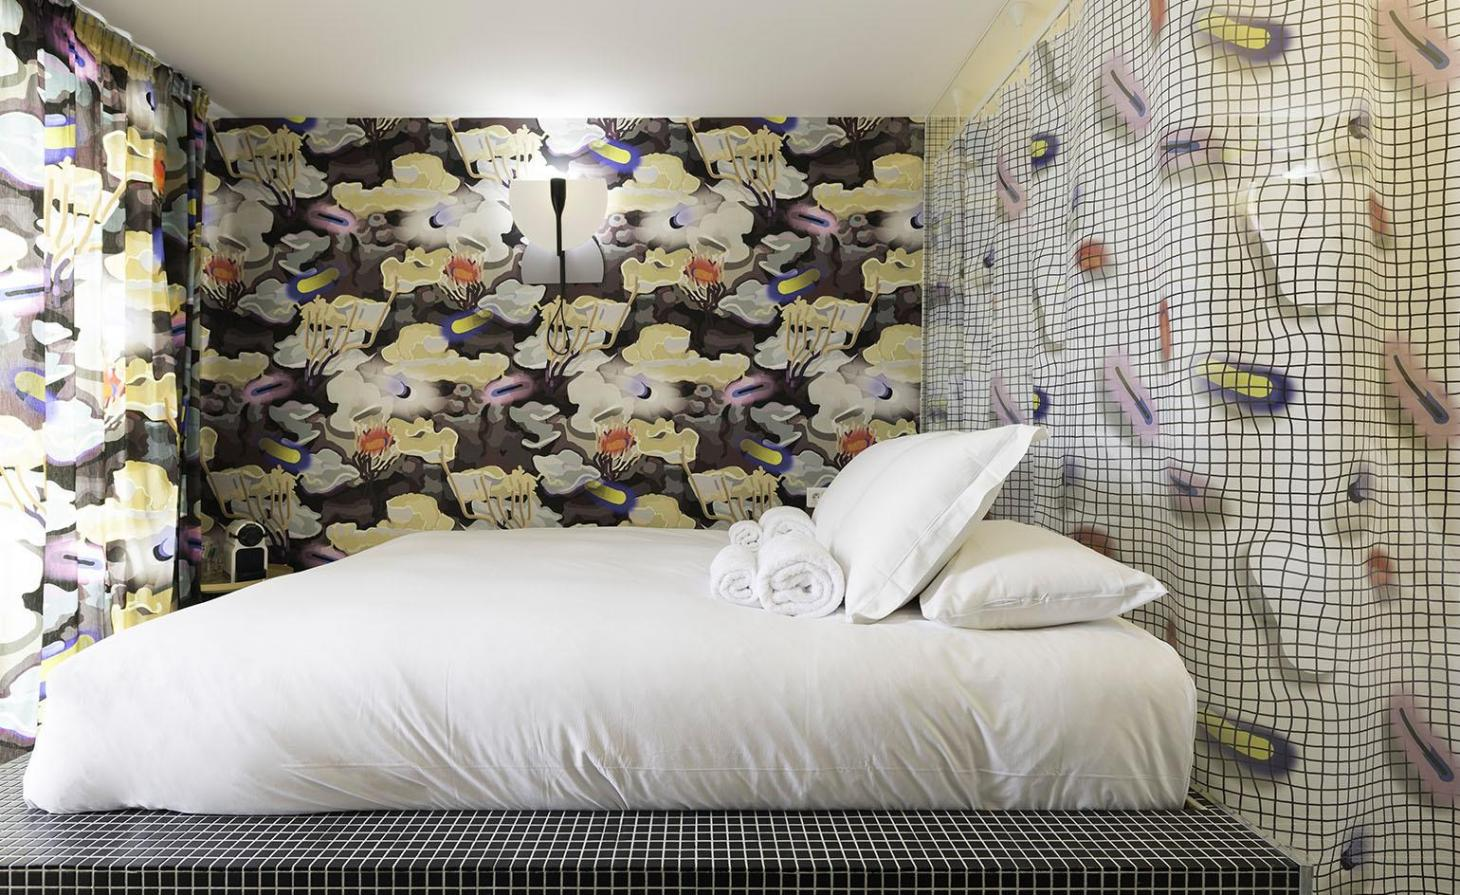 14 Rooms by 14 designers at Design Parade in Hyres